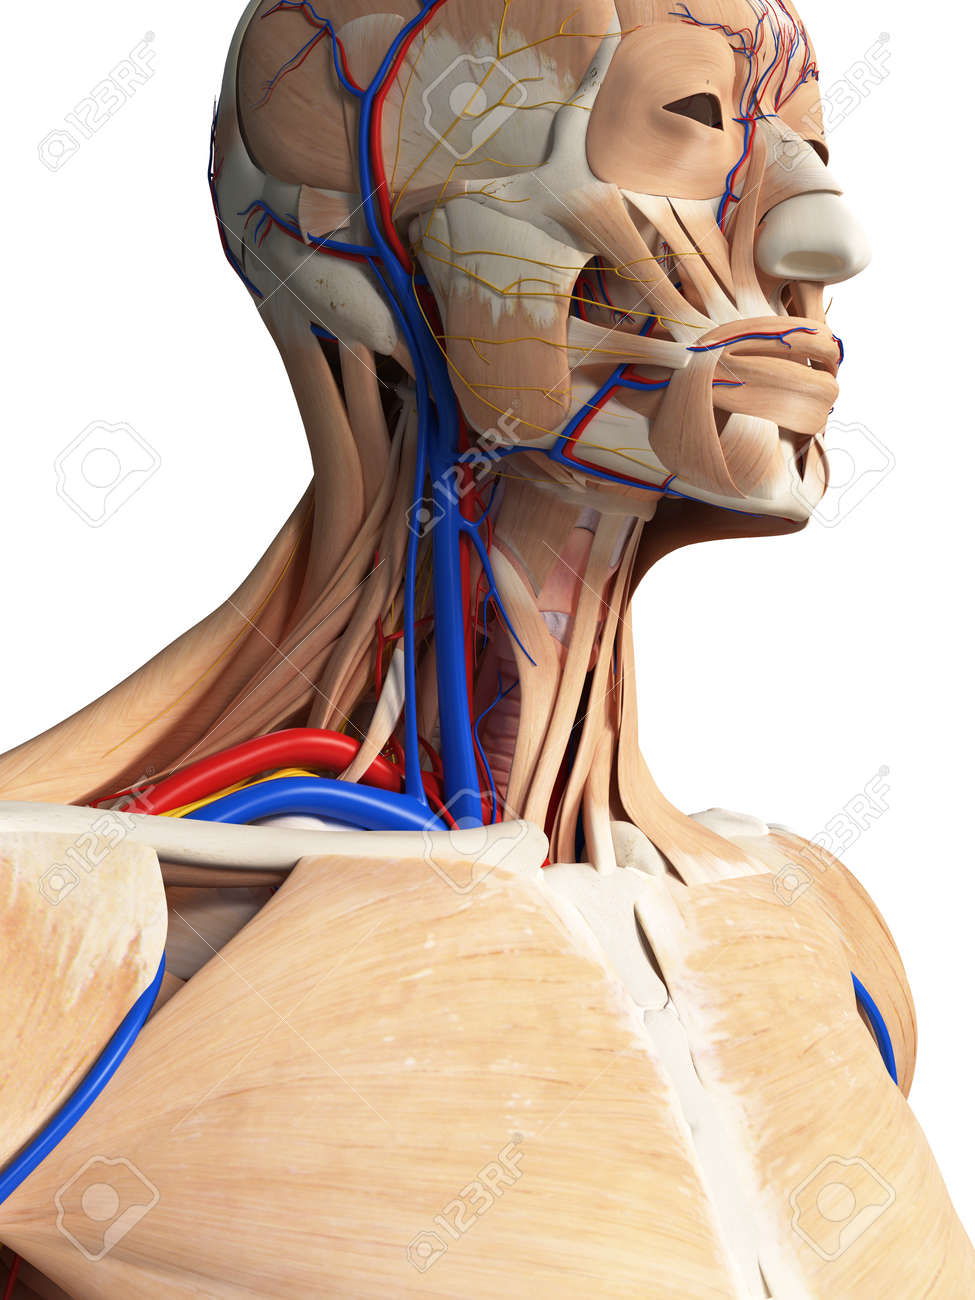 3d Rendered Medically Accurate Illustration Of The Head And Neck ...